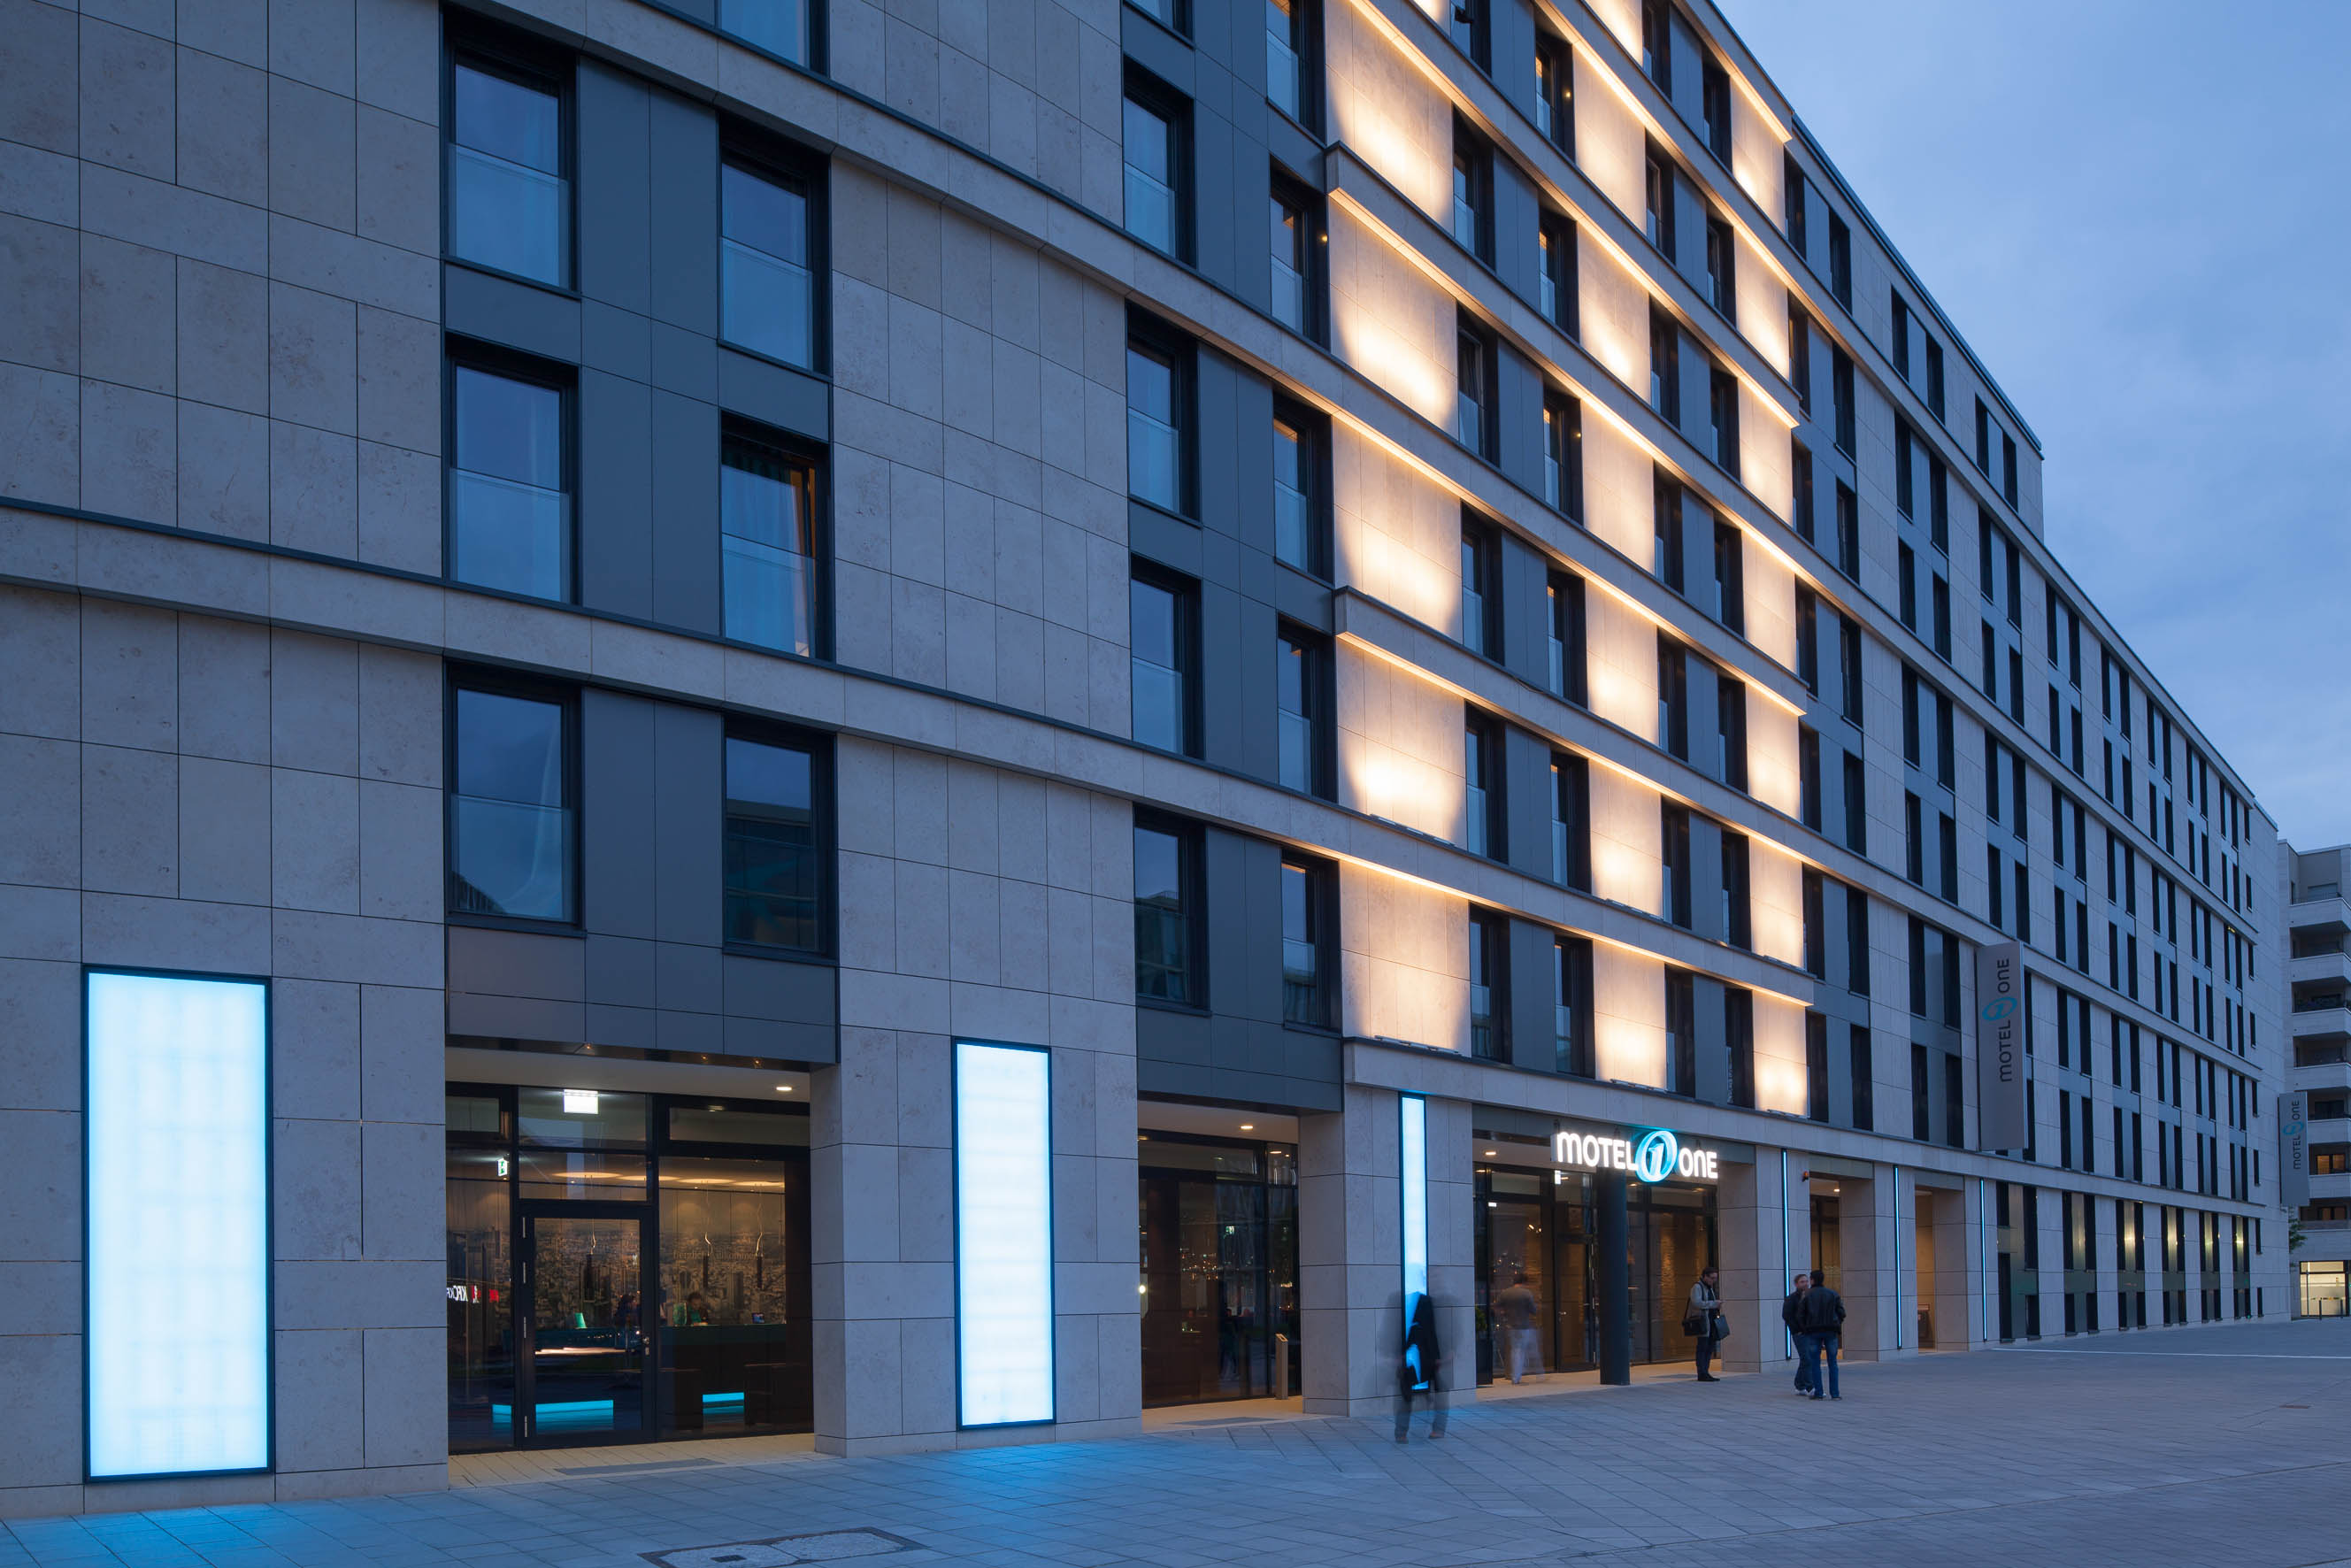 Hotel motel one frankfurt messe hotels hotels for Design hotel taunus